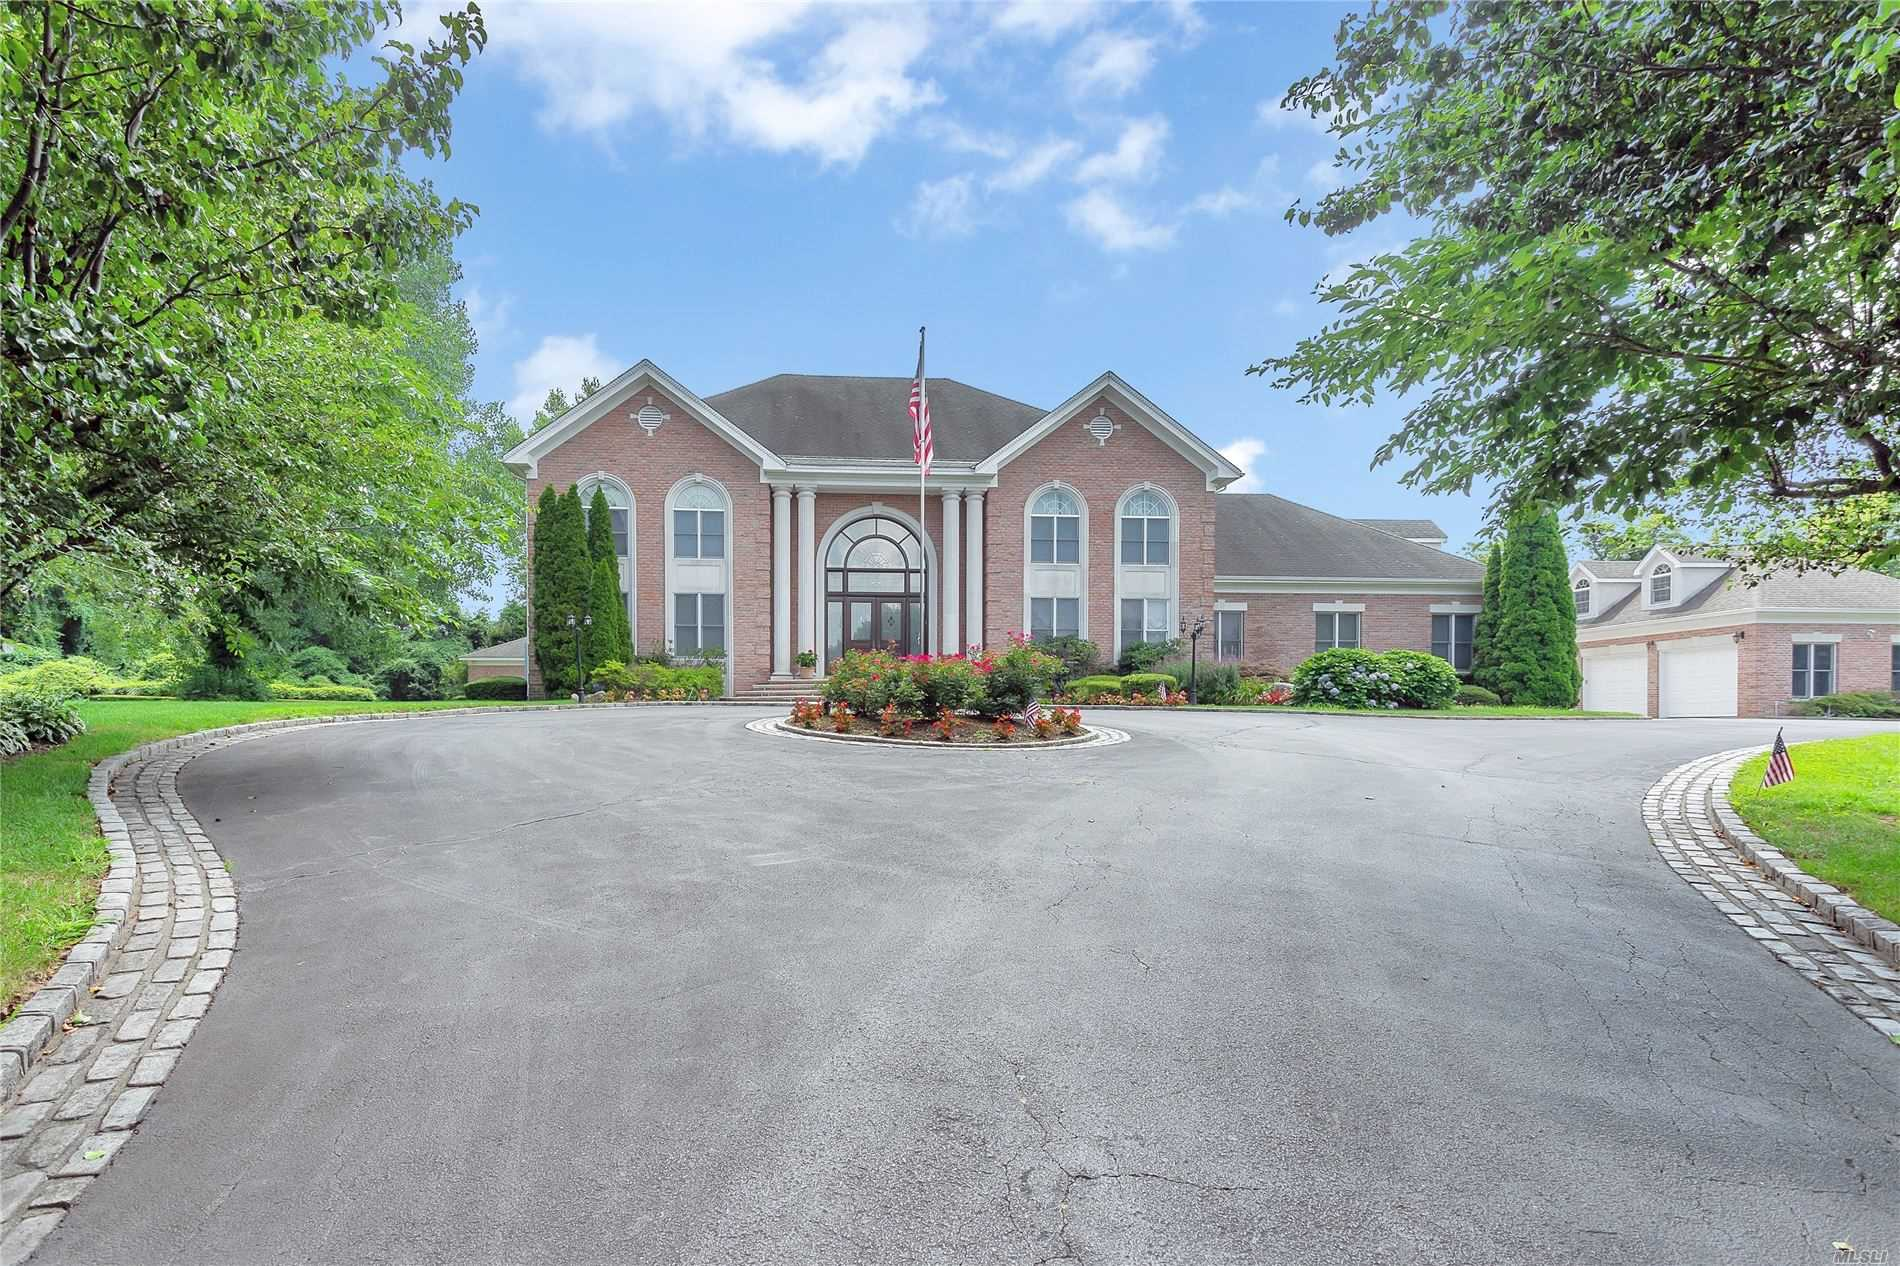 Upper Brookville. Grand Brick Georgian Manor On Private Cul-De-Sac Location In Upper Brookville. This Stately Custom-Built Home On Over 2 Serene Acres Features 5 Bedrooms & 4.5 Baths. With Bright & Airy Rooms Throughout, Grand Entry Foyer W/2nd Floor Balconies, Dining Room, Large & Open Living Room & Den, Family Room W/Custom Bar & Built Ins, Eat in Kitchen & Exquisite Breakfast Area W/Double Sided Fireplace & Multiple French Doors to Patio, 3 Car Att. & 3 Car Det. Garages, Ig Pool & Poolhouse.